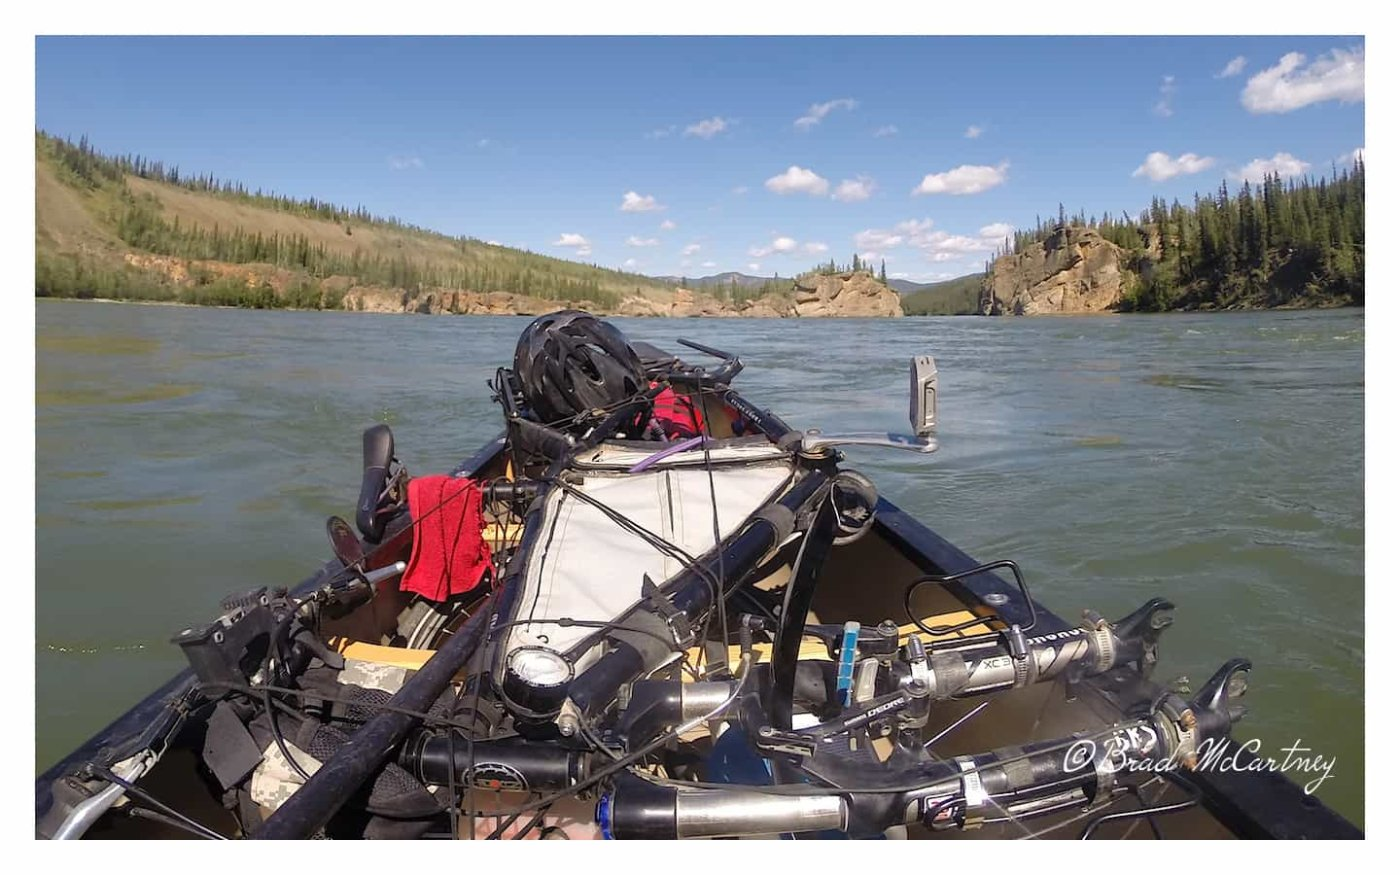 Canoeing with a bicycle yukon river